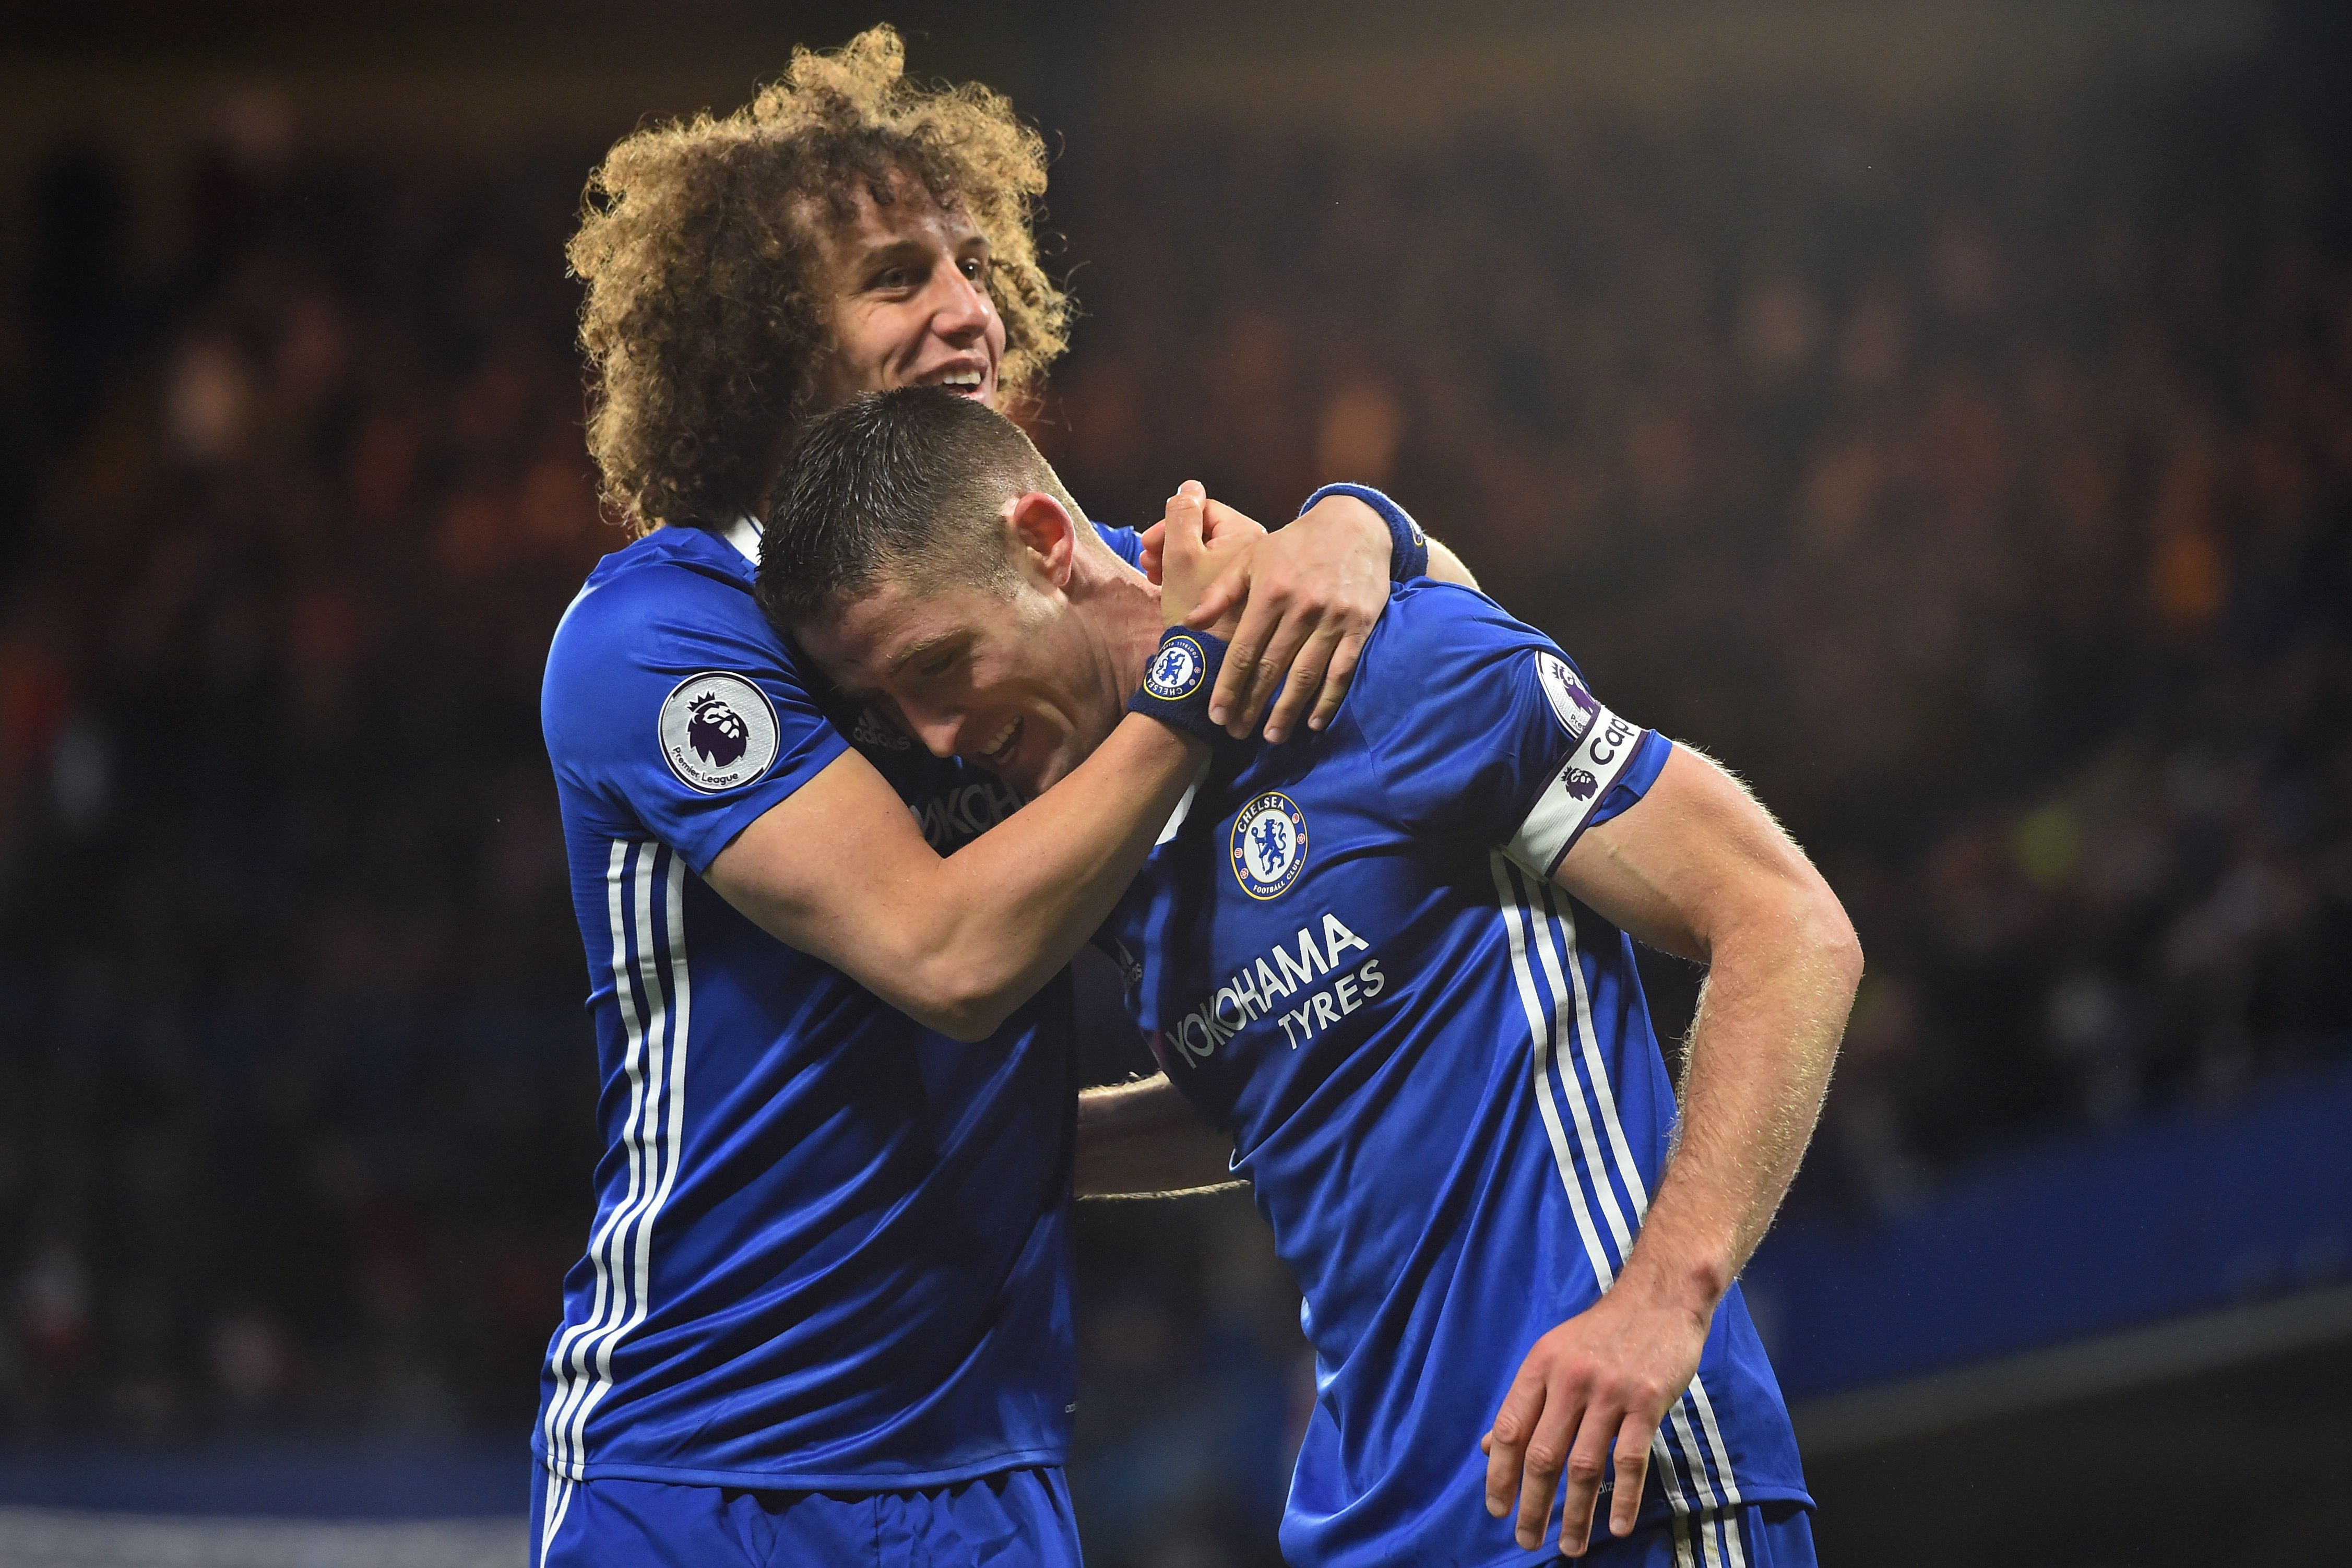 Chelsea's English defender Gary Cahill celebrates with Chelsea's Brazilian defender David Luiz (L) after scoring their second goal during the English Premier League football match between Chelsea and Southampton at Stamford Bridge in London on April 25, 2017. / AFP PHOTO / Glyn KIRK / RESTRICTED TO EDITORIAL USE. No use with unauthorized audio, video, data, fixture lists, club/league logos or 'live' services. Online in-match use limited to 75 images, no video emulation. No use in betting, games or single club/league/player publications. / (Photo credit should read GLYN KIRK/AFP/Getty Images)